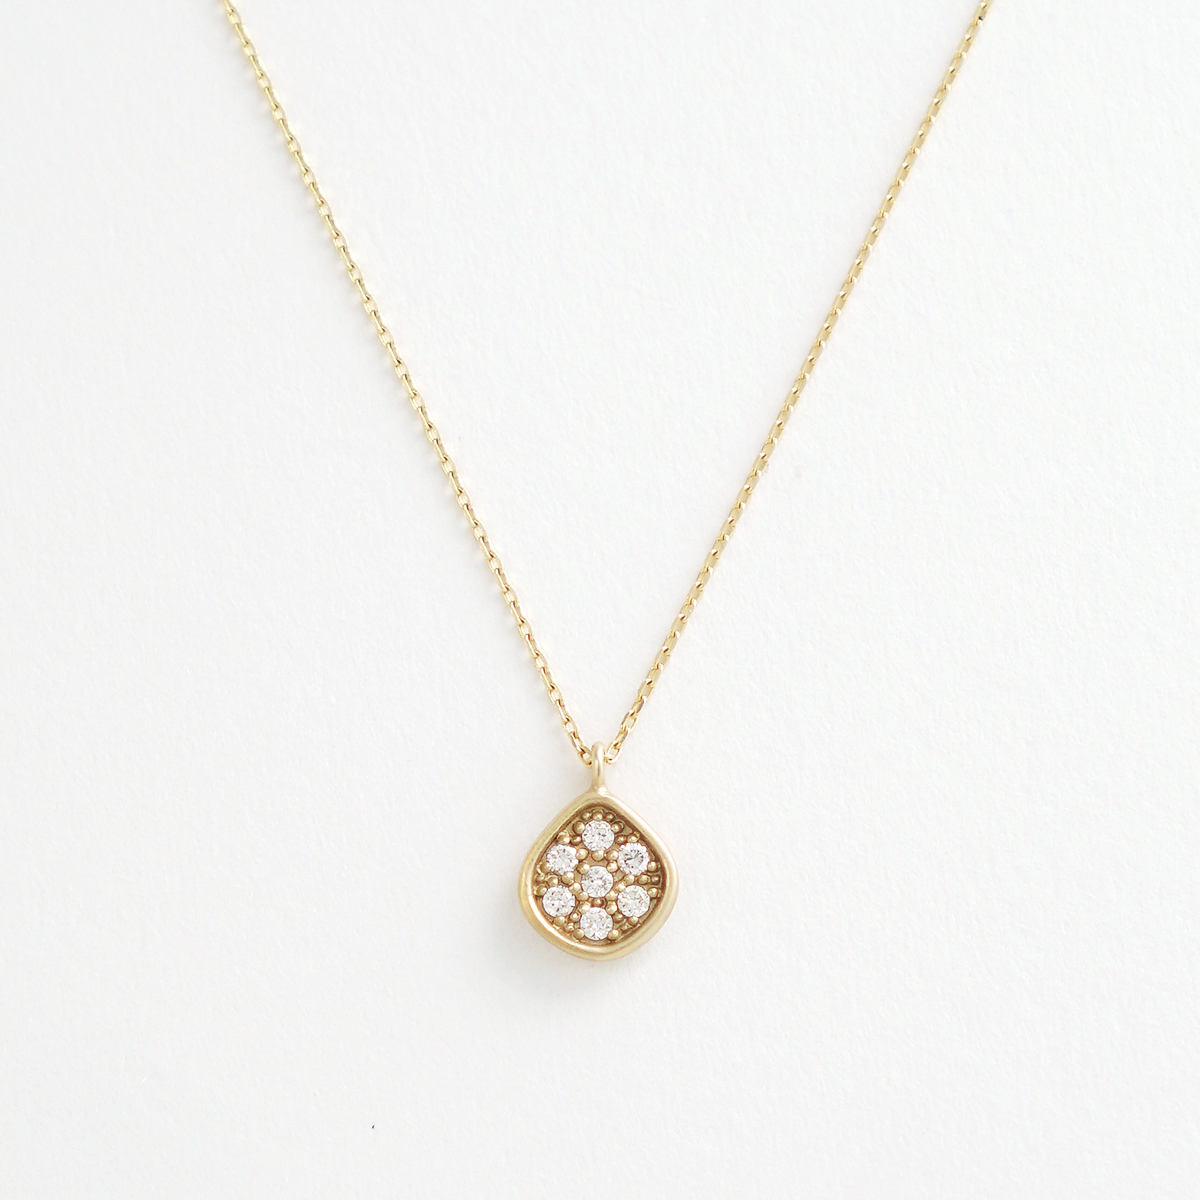 The Heritage drop necklace